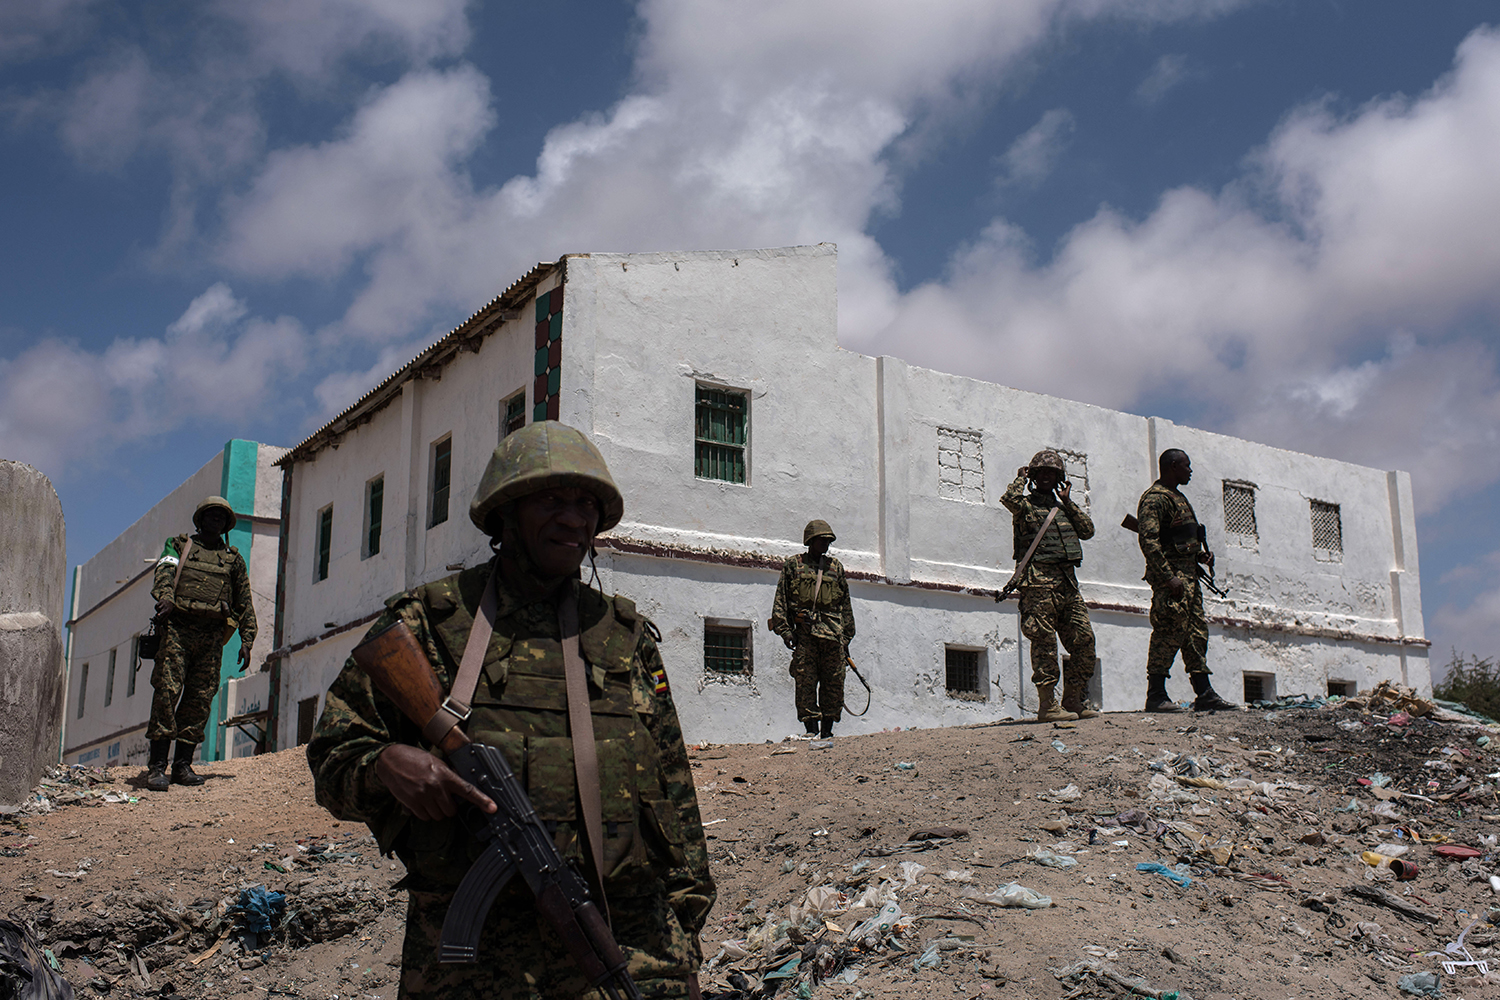 Ugandan soldiers deployed with the African Union Mission in Somalia (AMISOM) look at the beach in Barawe, Somalia, on Oct. 11, 2016.